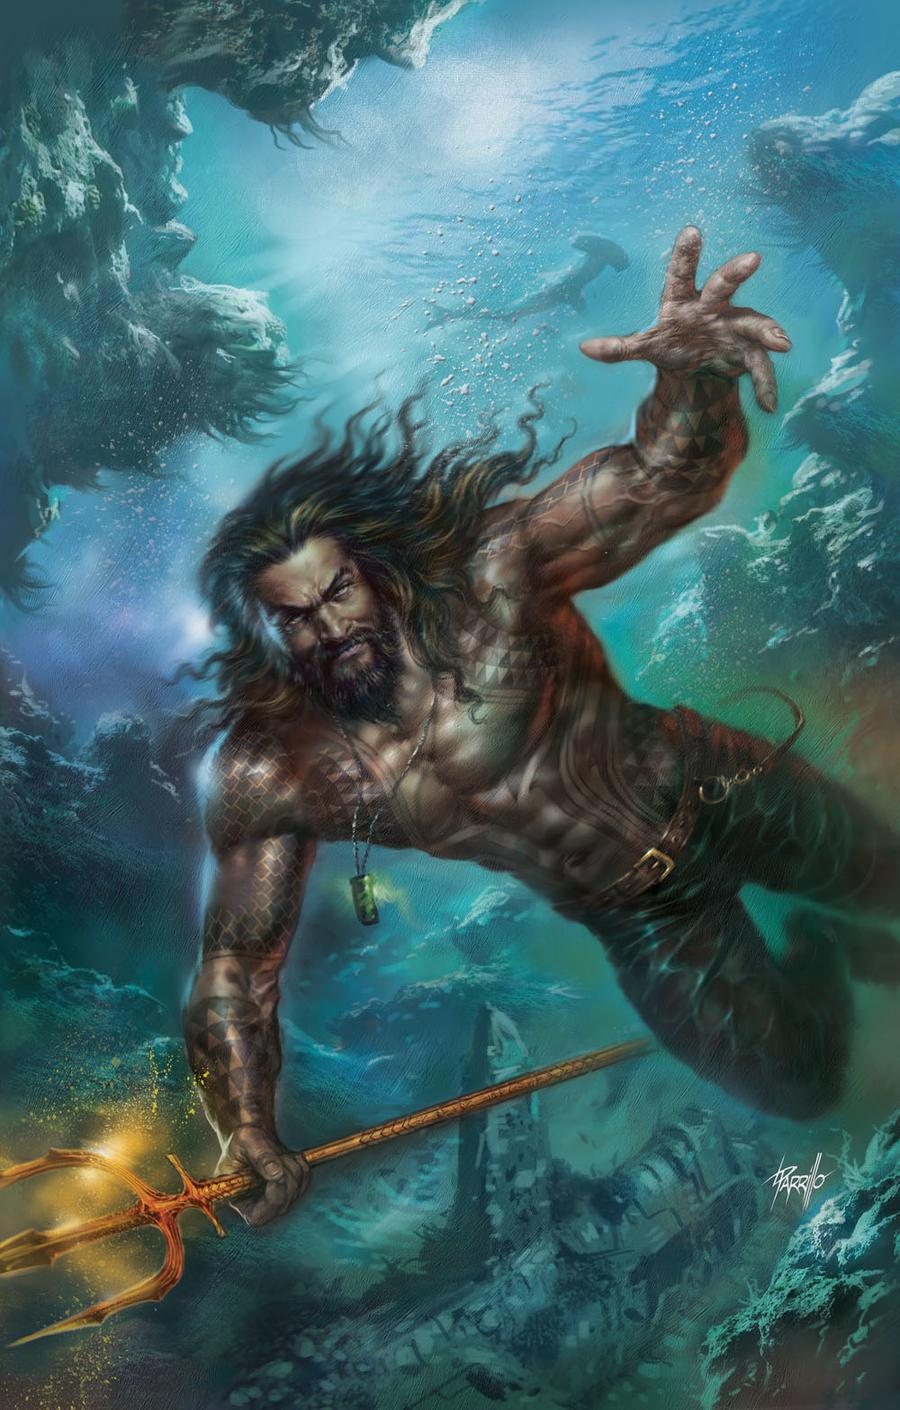 Justice League Vol 4 #12 Cover B Variant Lucio Parrillo Aquaman Movie Cover (Drowned Earth Part 3)